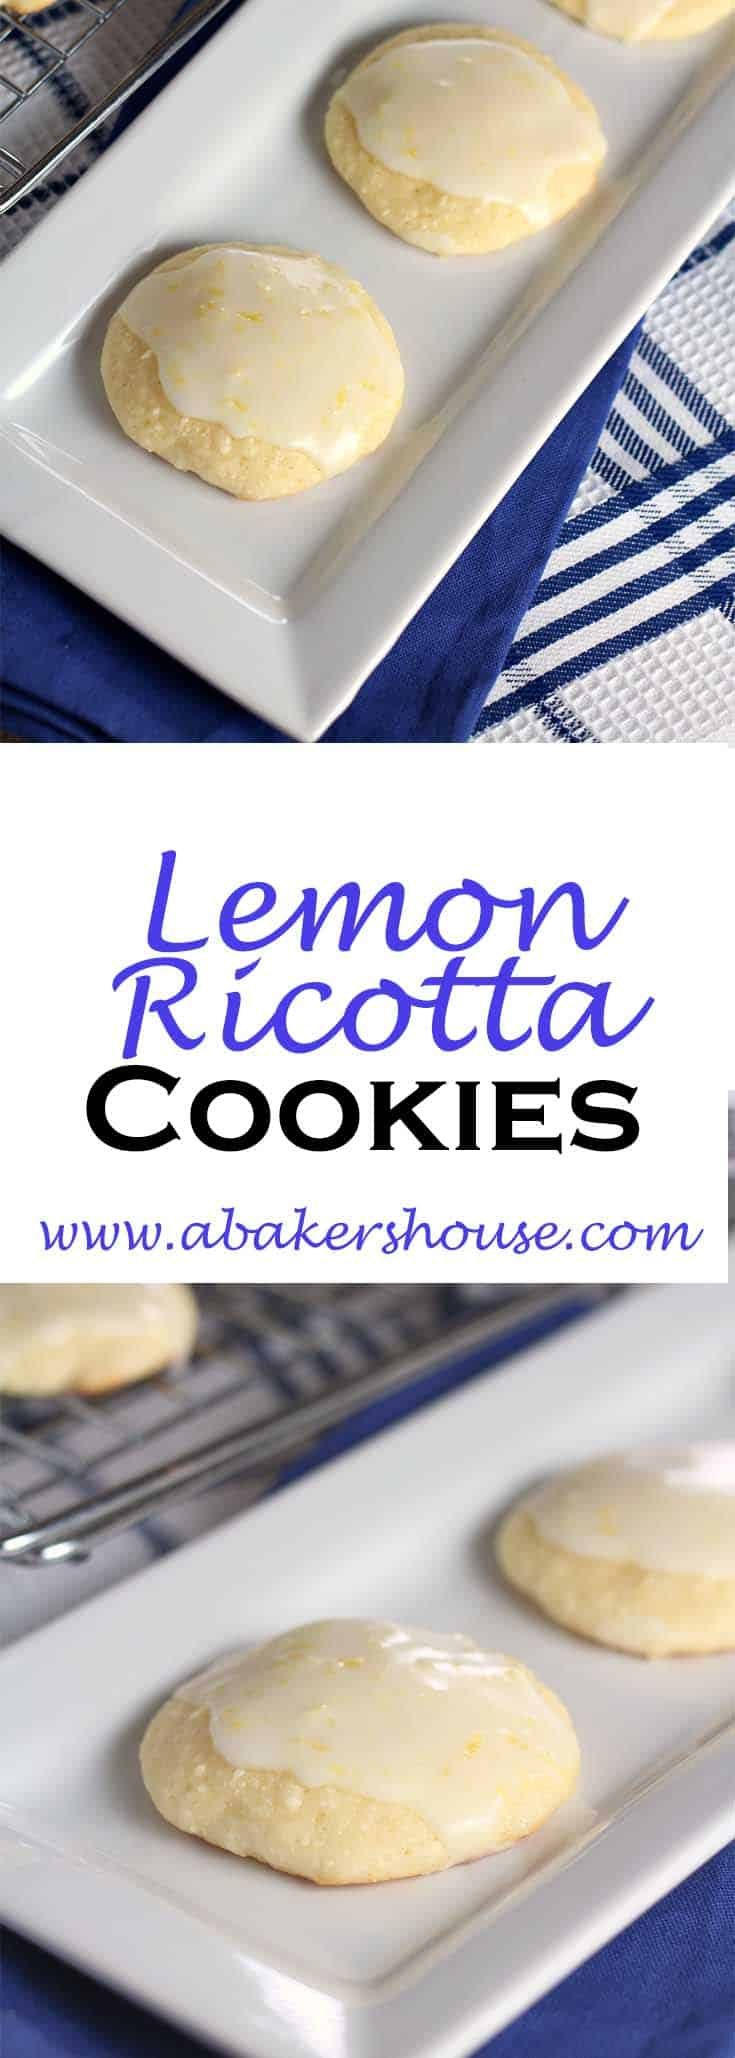 Lemon Ricotta Cookies are a fluffy and light cookie that reminded me of a madeleine -- half cookie and half cake-like. Topped with a lemon glaze made with lemon juice and zest, these cookies disappeared quickly! #abakershouse #lemoncookies #ricotta cookies